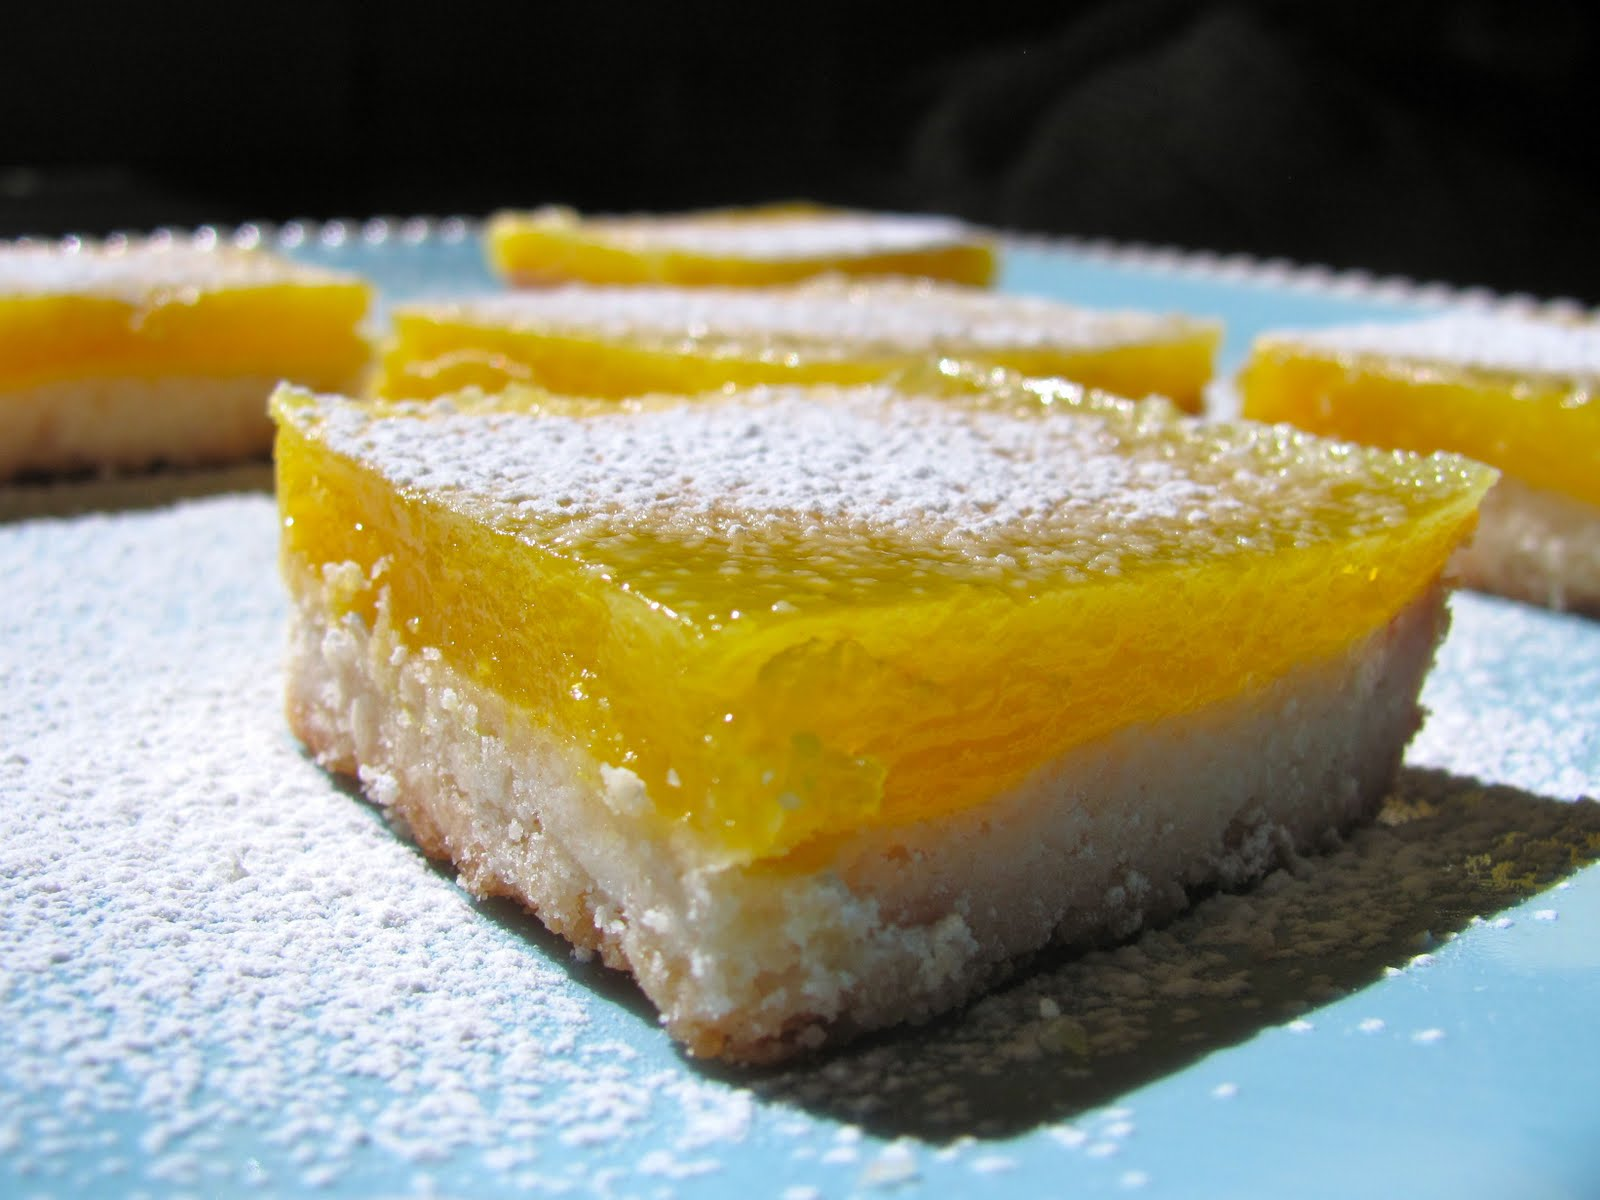 ... much...: Vegan Lemongrass-Lemon Bars, with Coconut Shortbread Crust